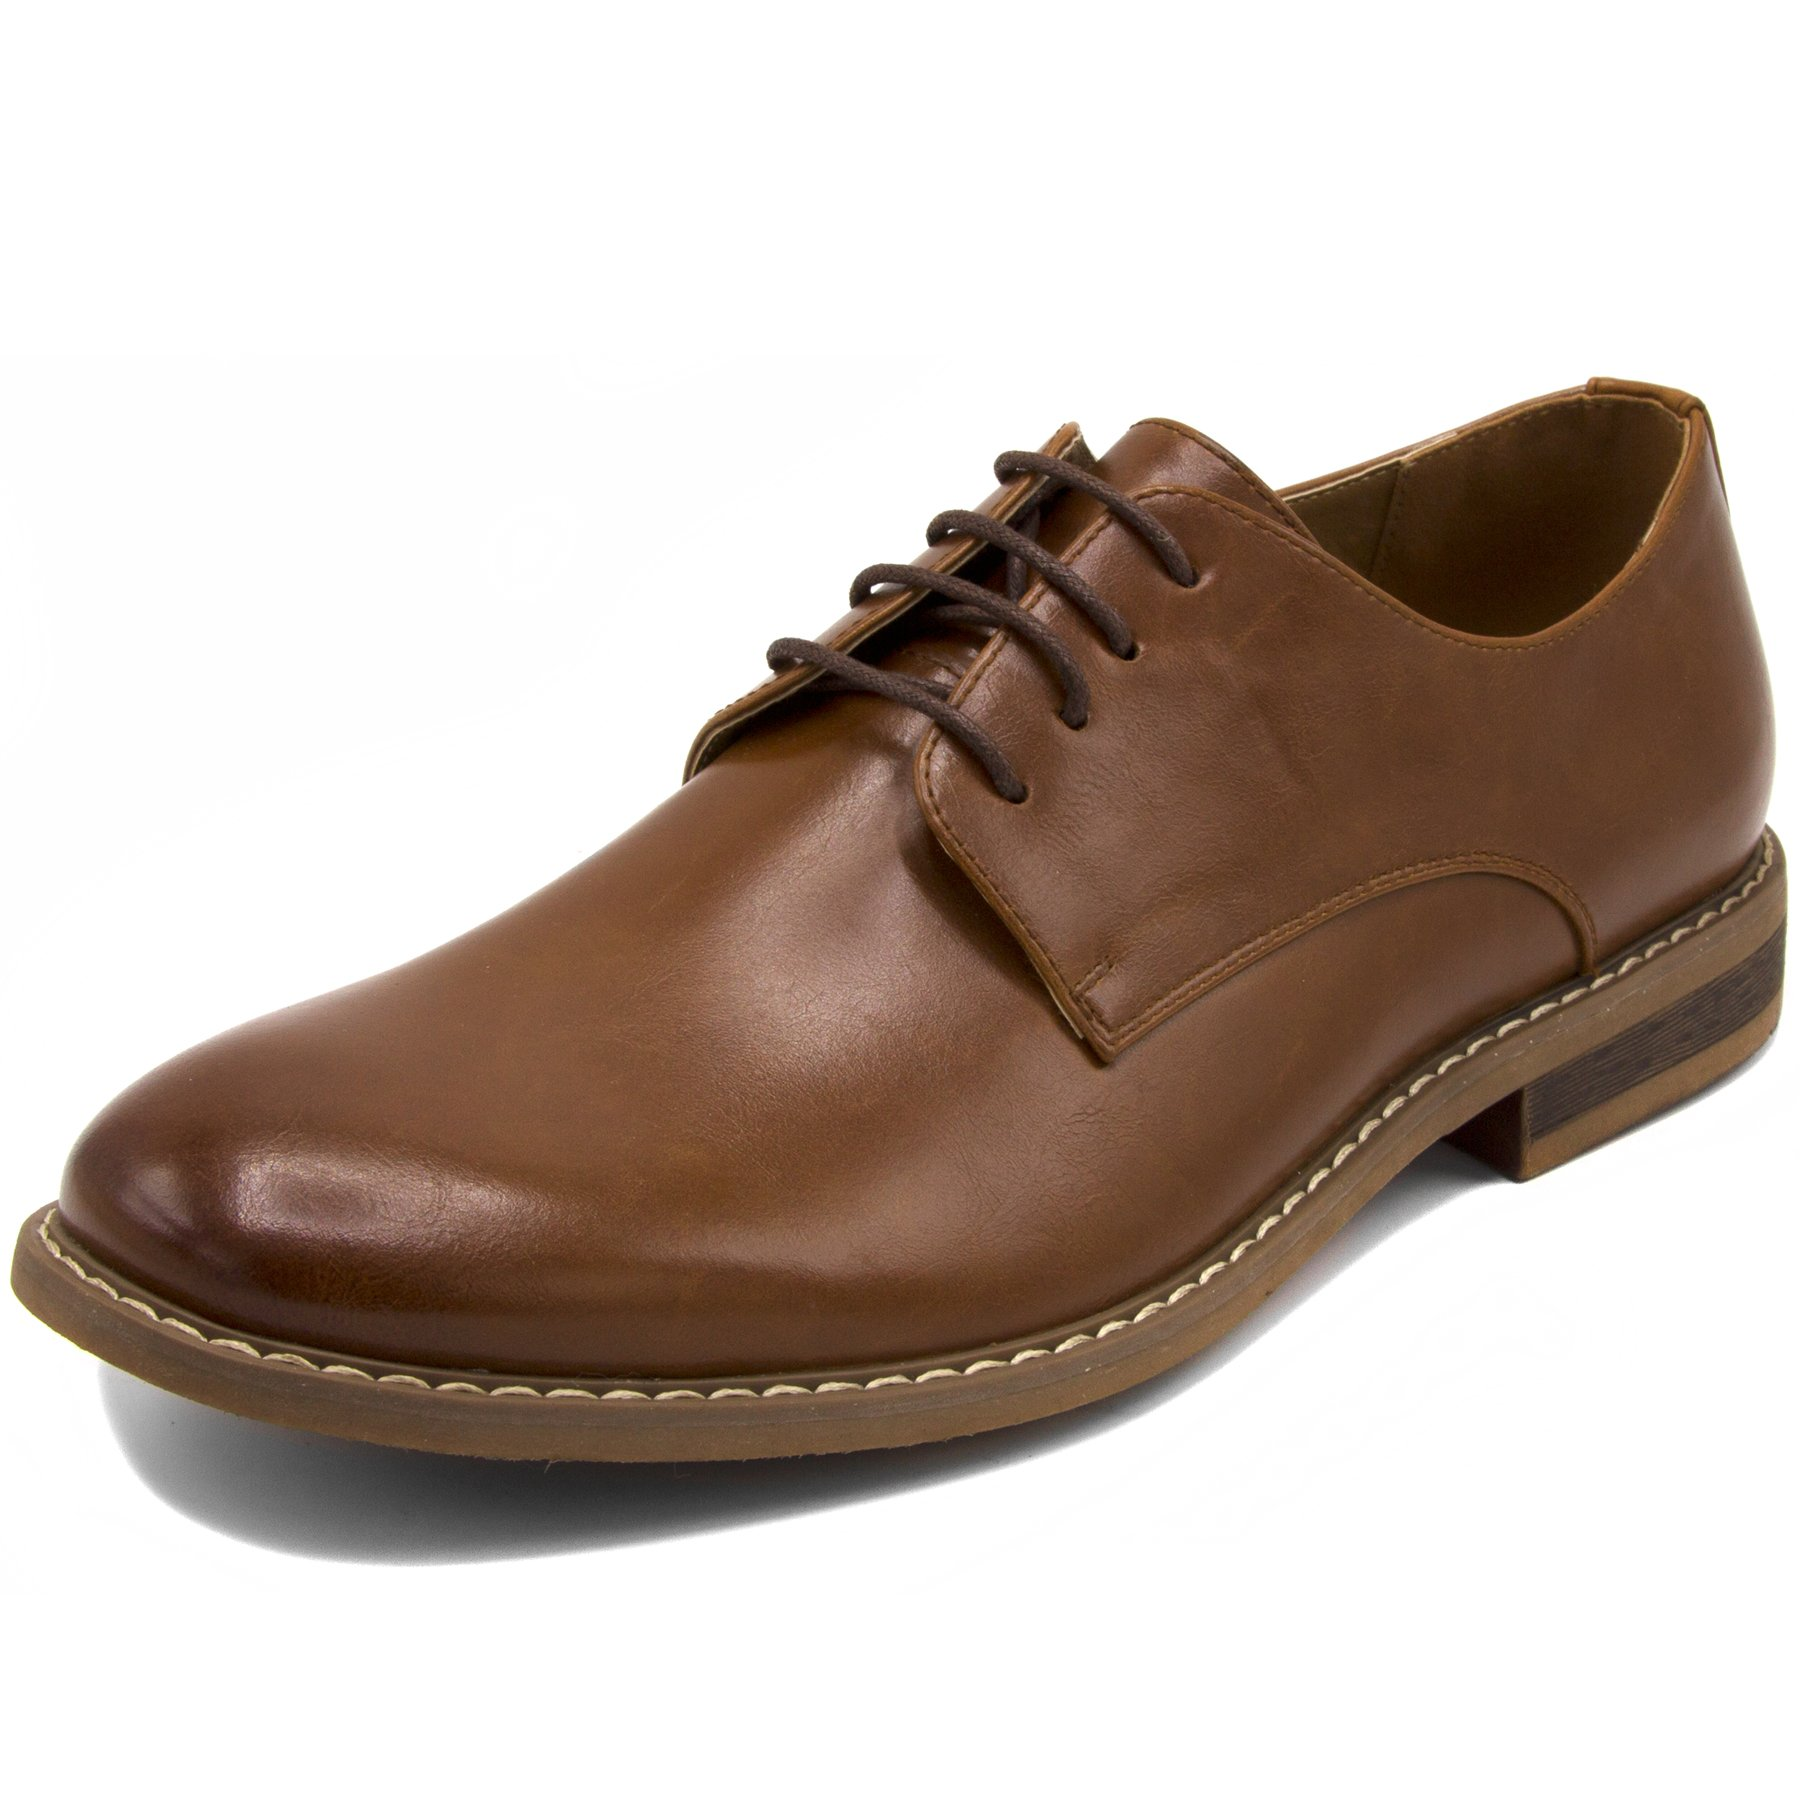 Nautica Men's Dress Shoes, Lace Up Oxford, Slip On Moc Toe Loafer-Harbor-Tan Smooth-9